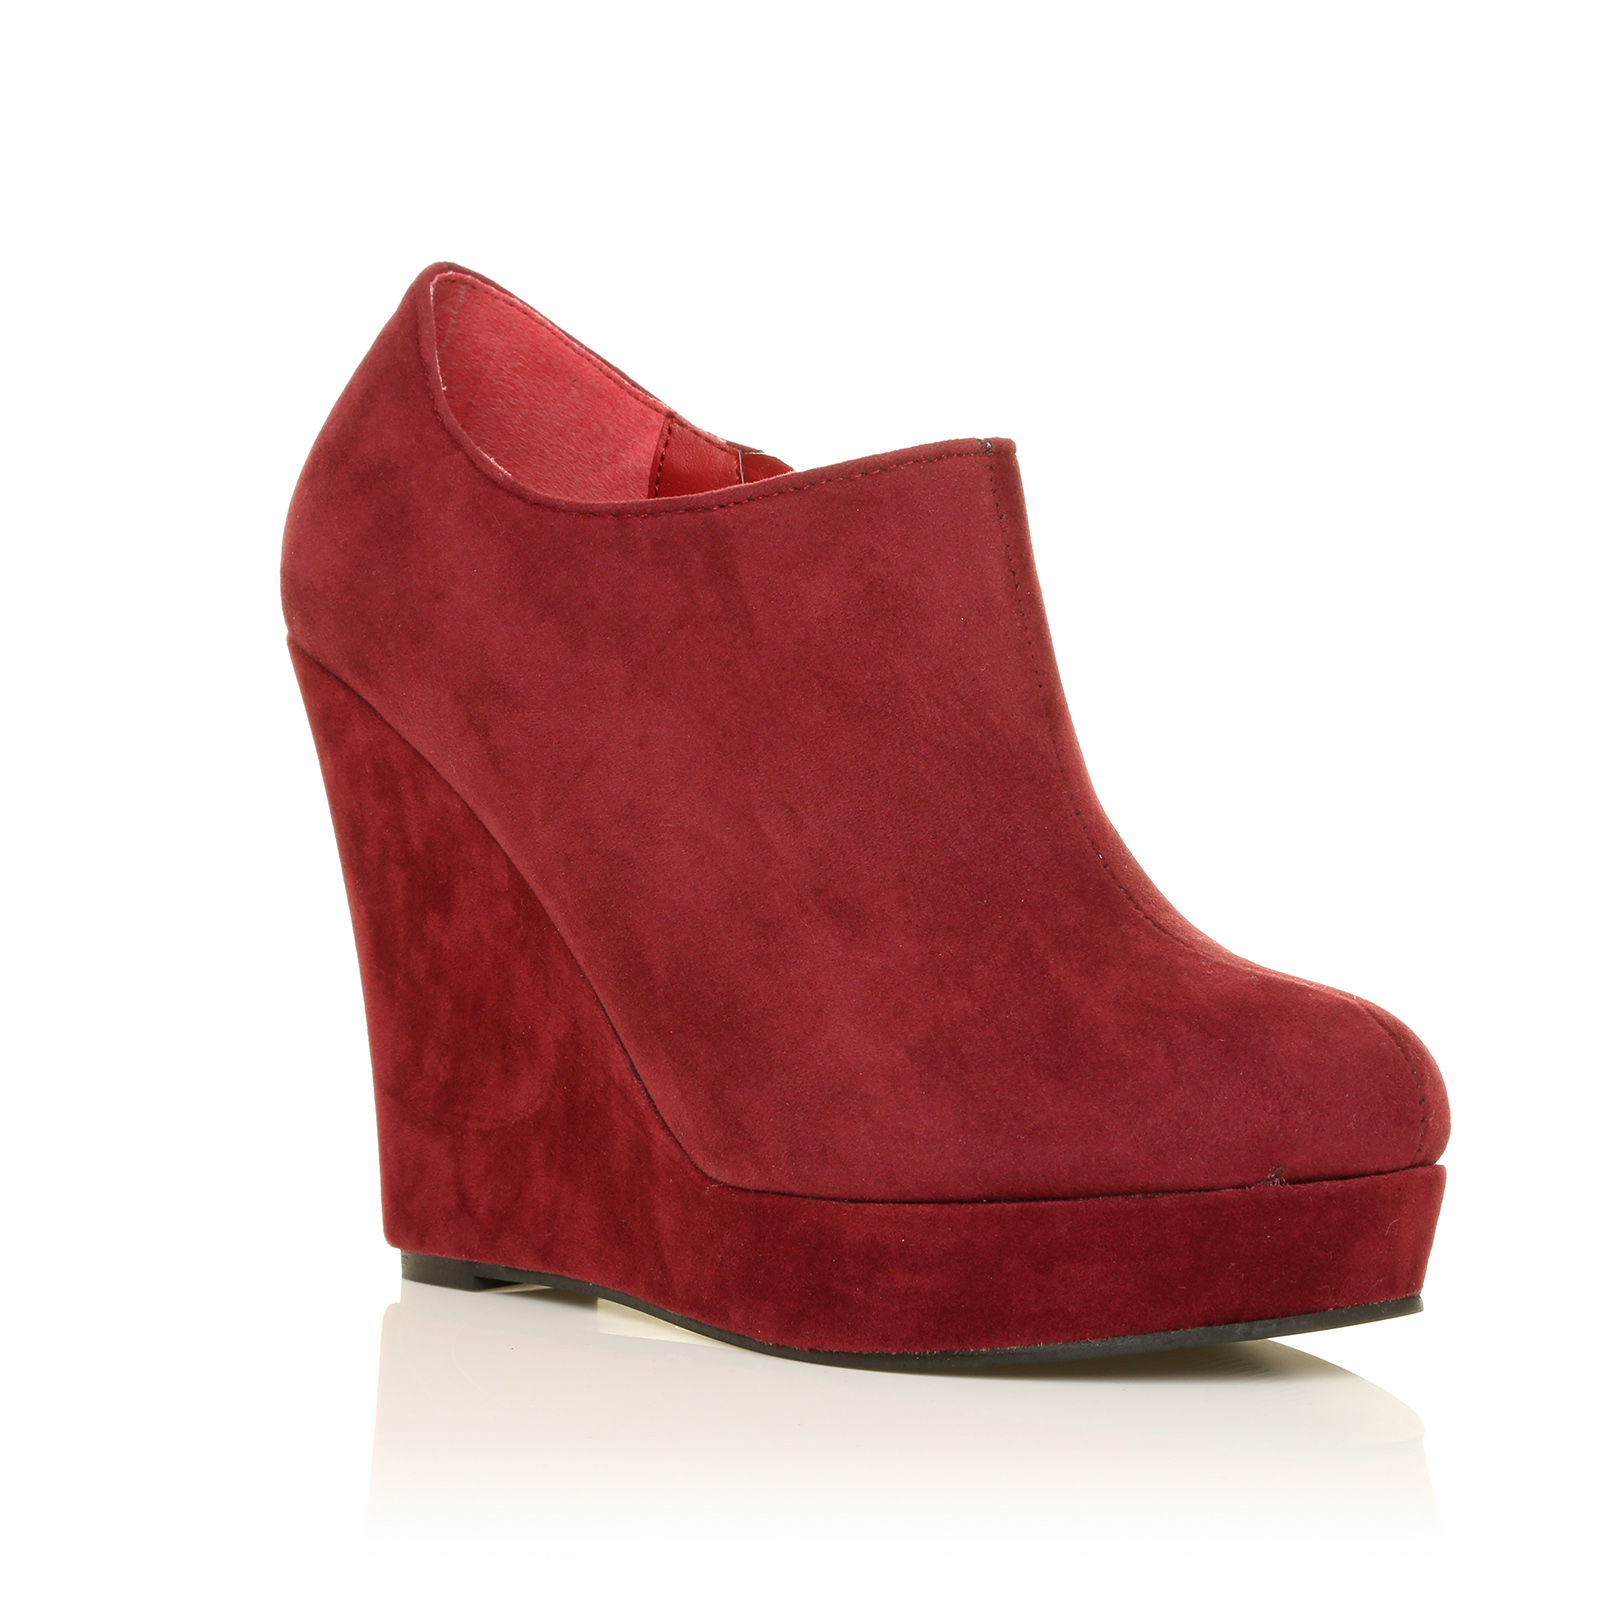 Size Women's Wedges: nichapie.ml - Your Online Women's Shoes Store! Get 5% in rewards with Club O!